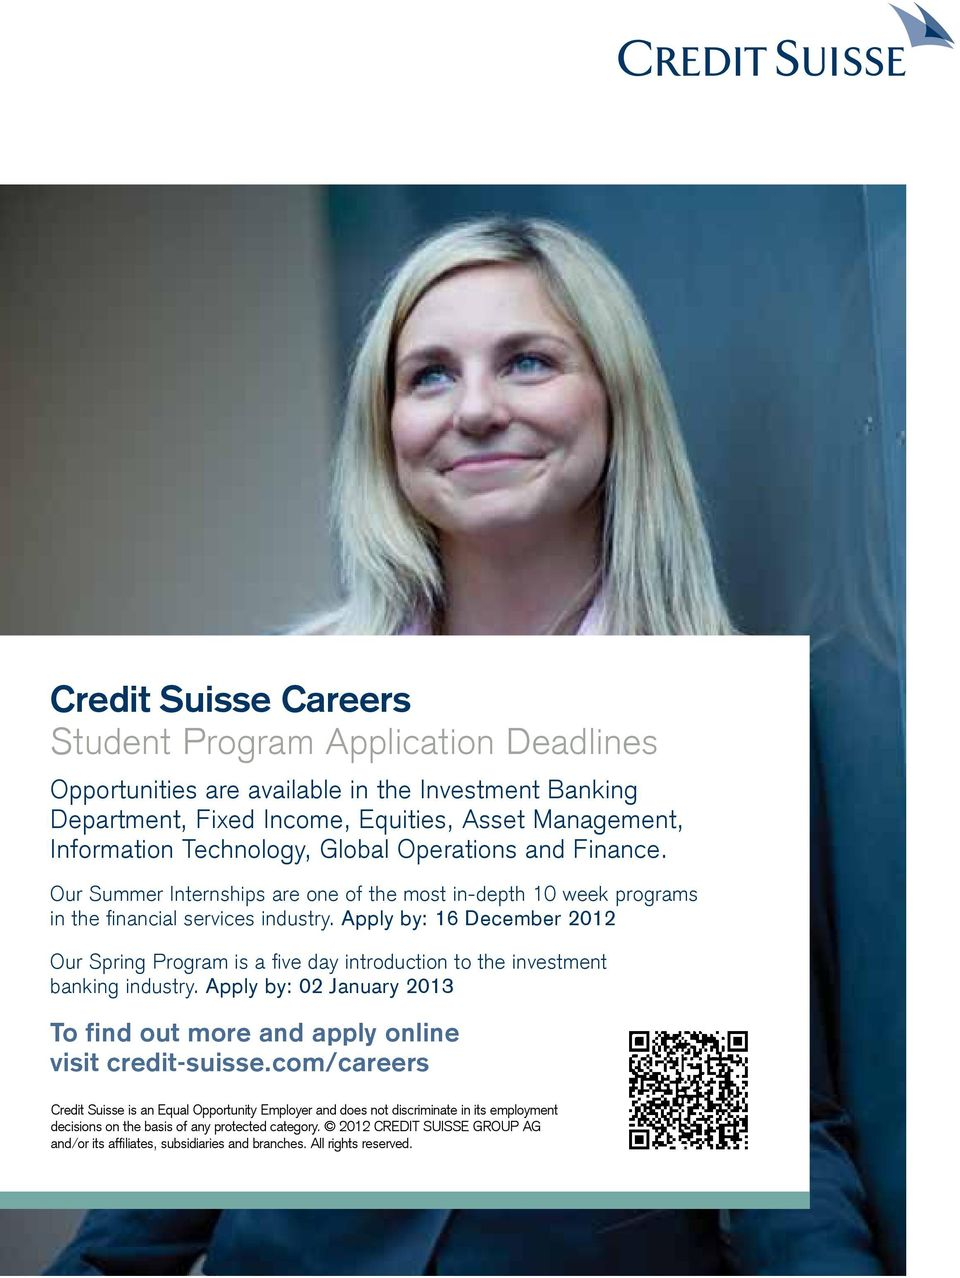 Apply by: 16 December 2012 Our Spring Program is a five day introduction to the investment banking industry. Apply by: 02 January 2013 To find out more and apply online visit credit-suisse.